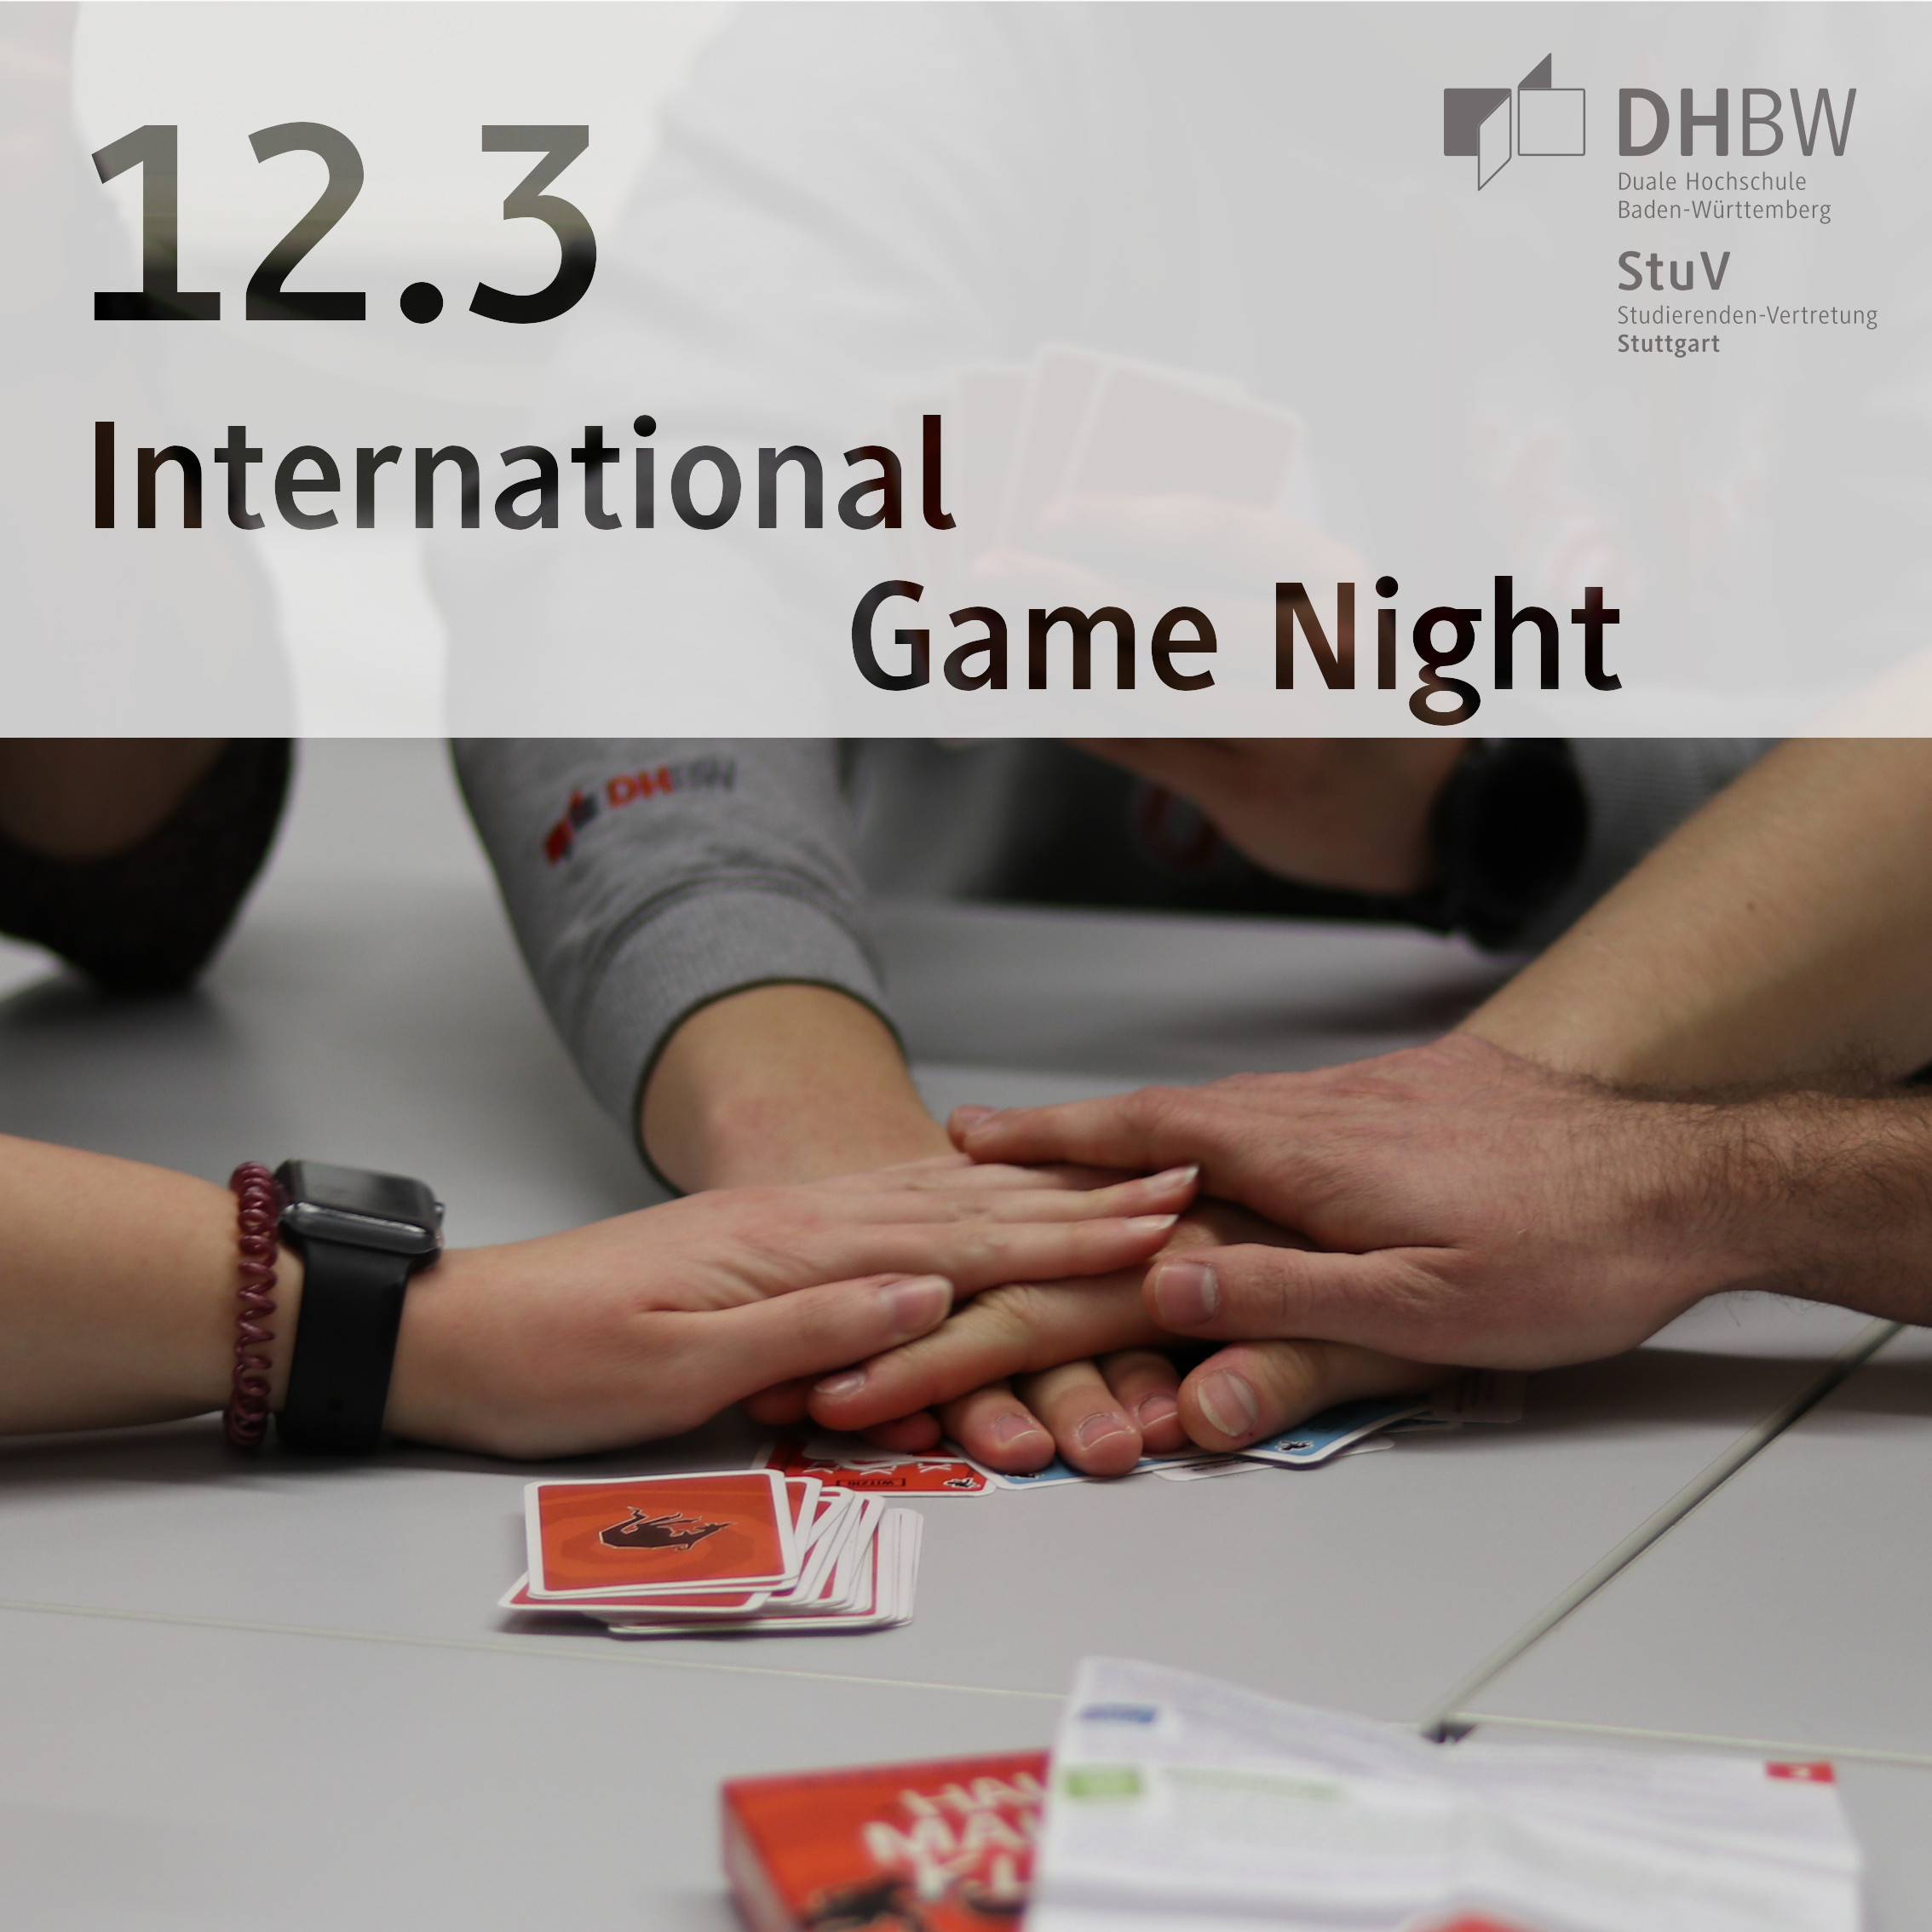 International Game Night March 12